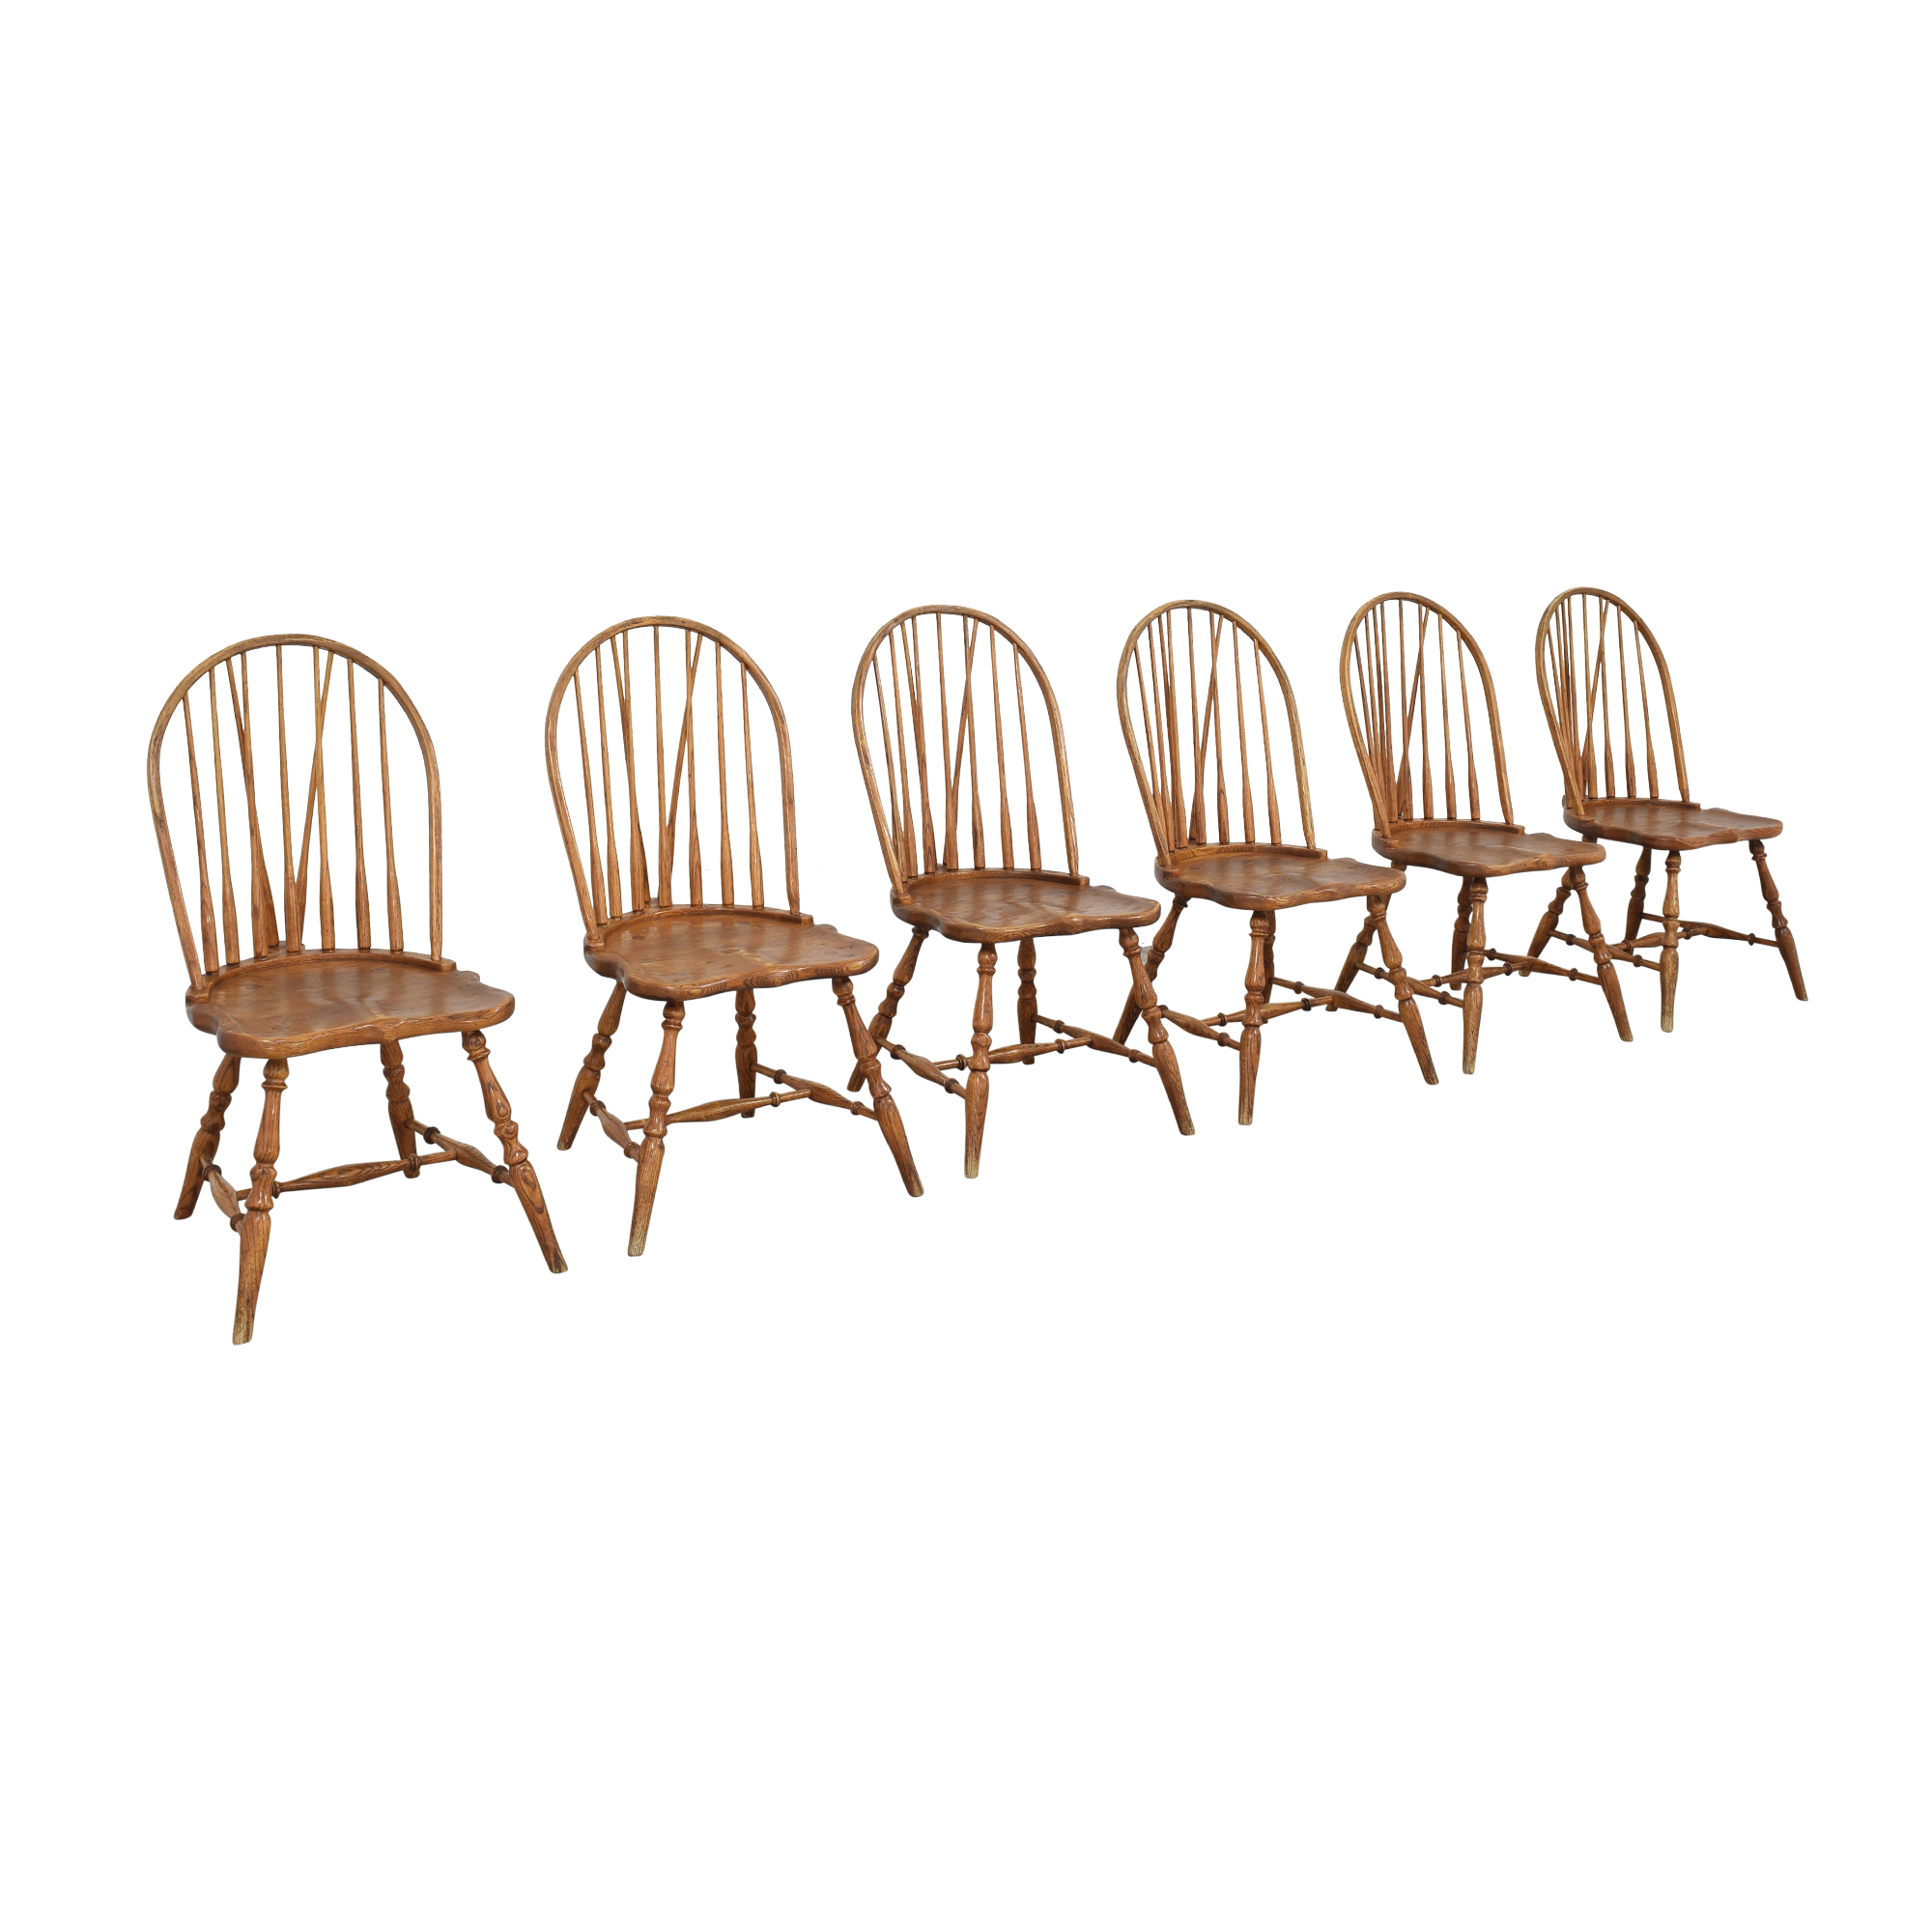 shop ABC Carpet & Home Windsor Style Dining Chairs ABC Carpet & Home Chairs